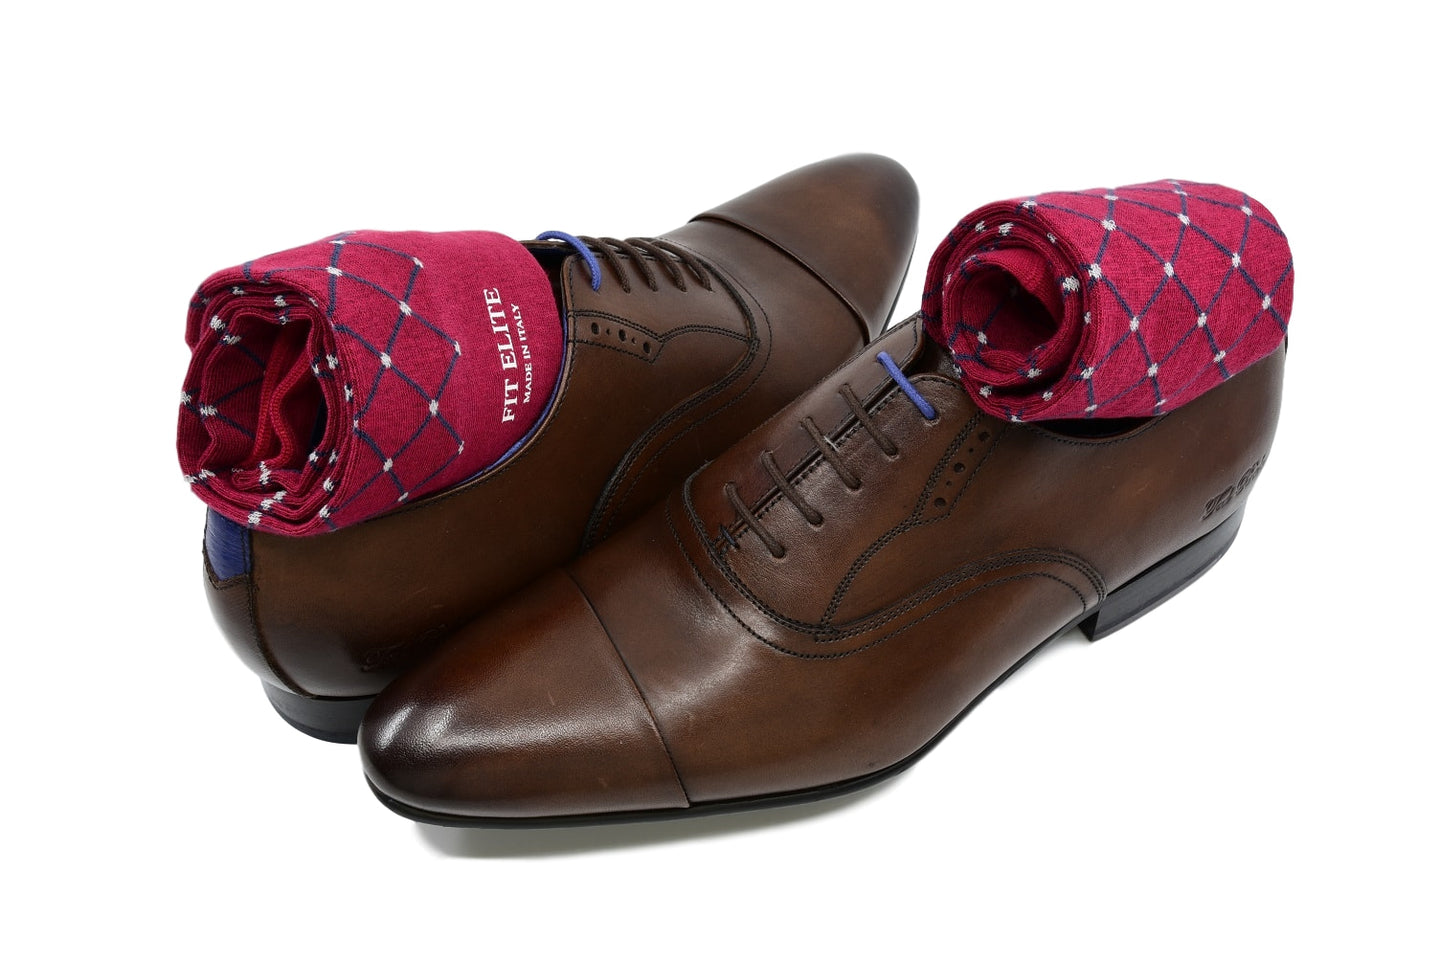 Men's patterned dress socks, red with grey polka dots, inside brown dress shoes